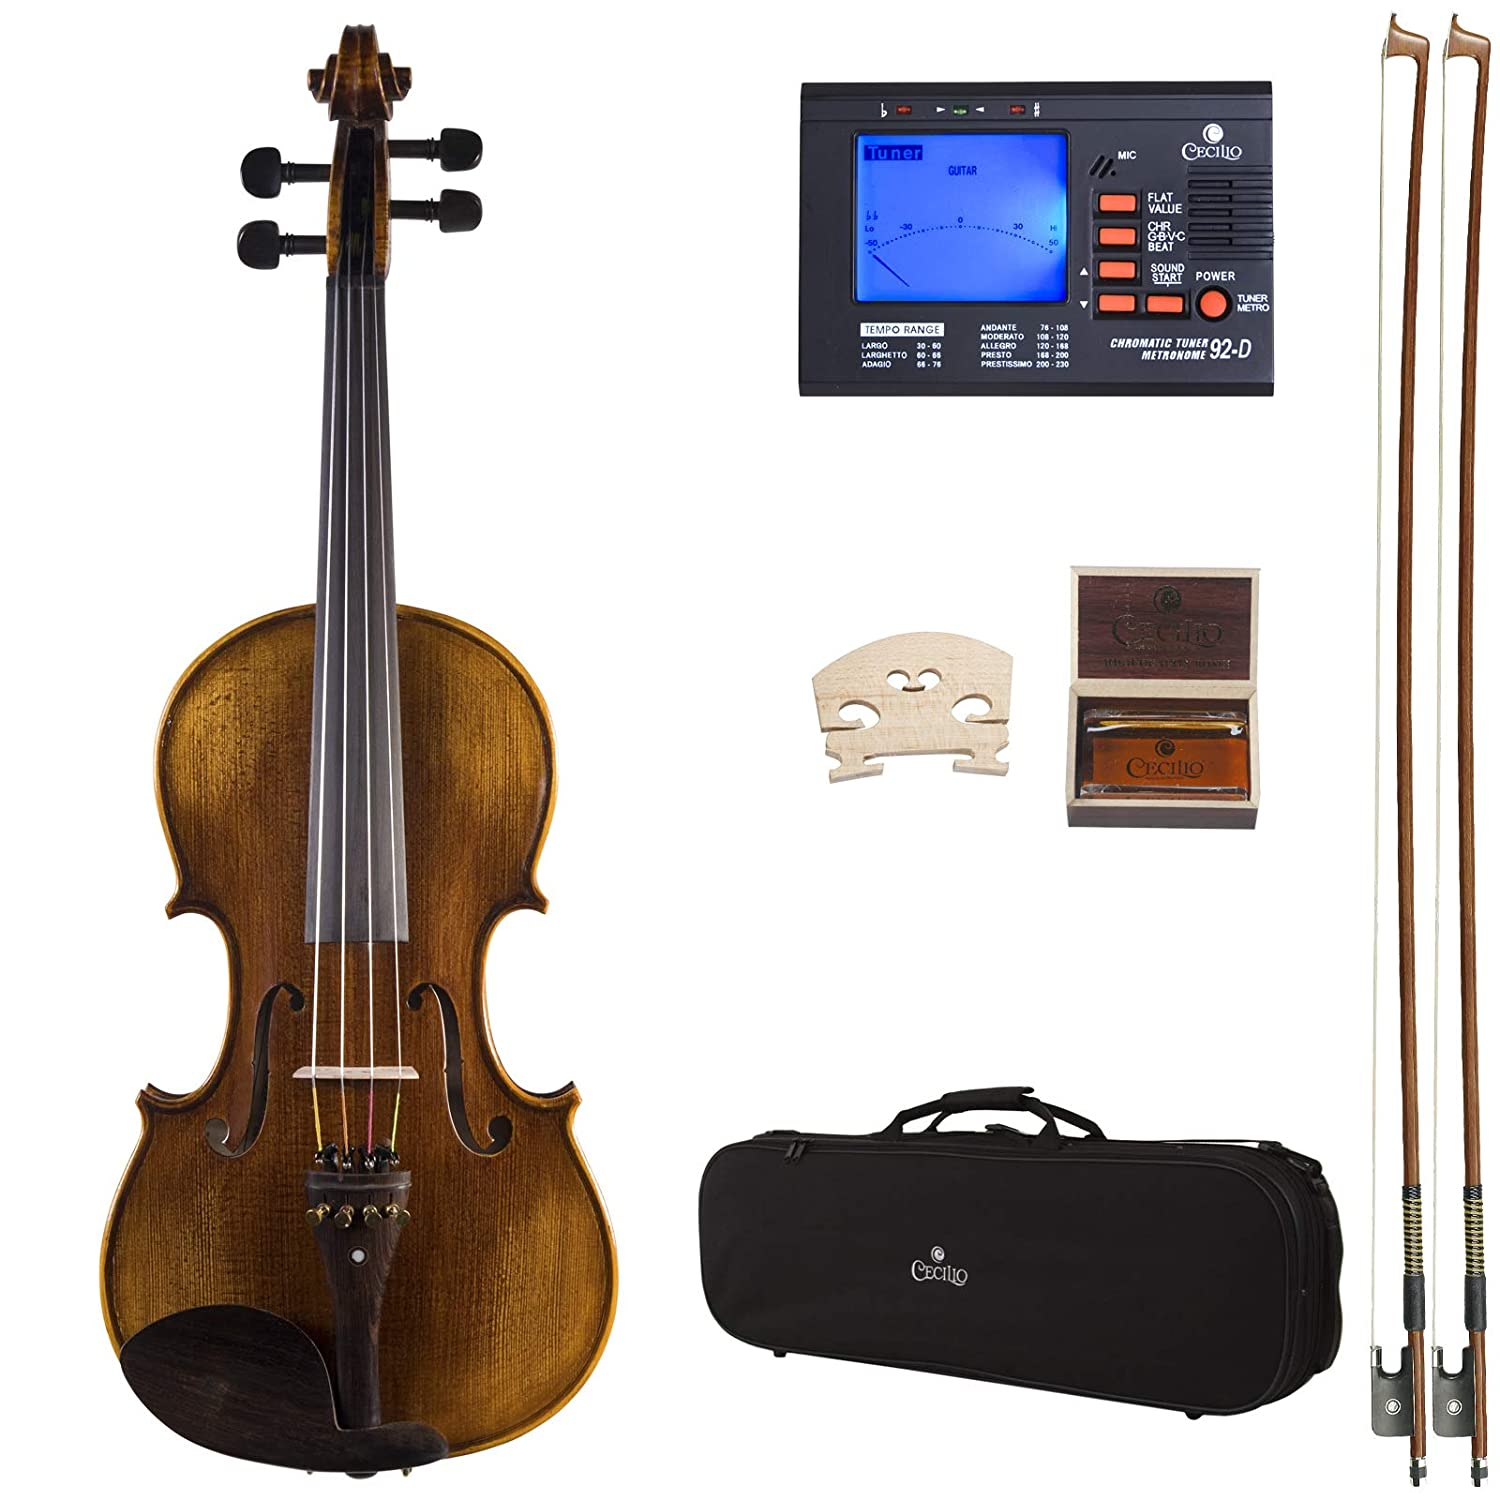 Cecilio 16.5 Inch Hand Oil Rubbed Highly Flamed 2-Piece Back Solidwood Viola with Tuner, CVA-600 Cecilio Musical Instruments 16.5